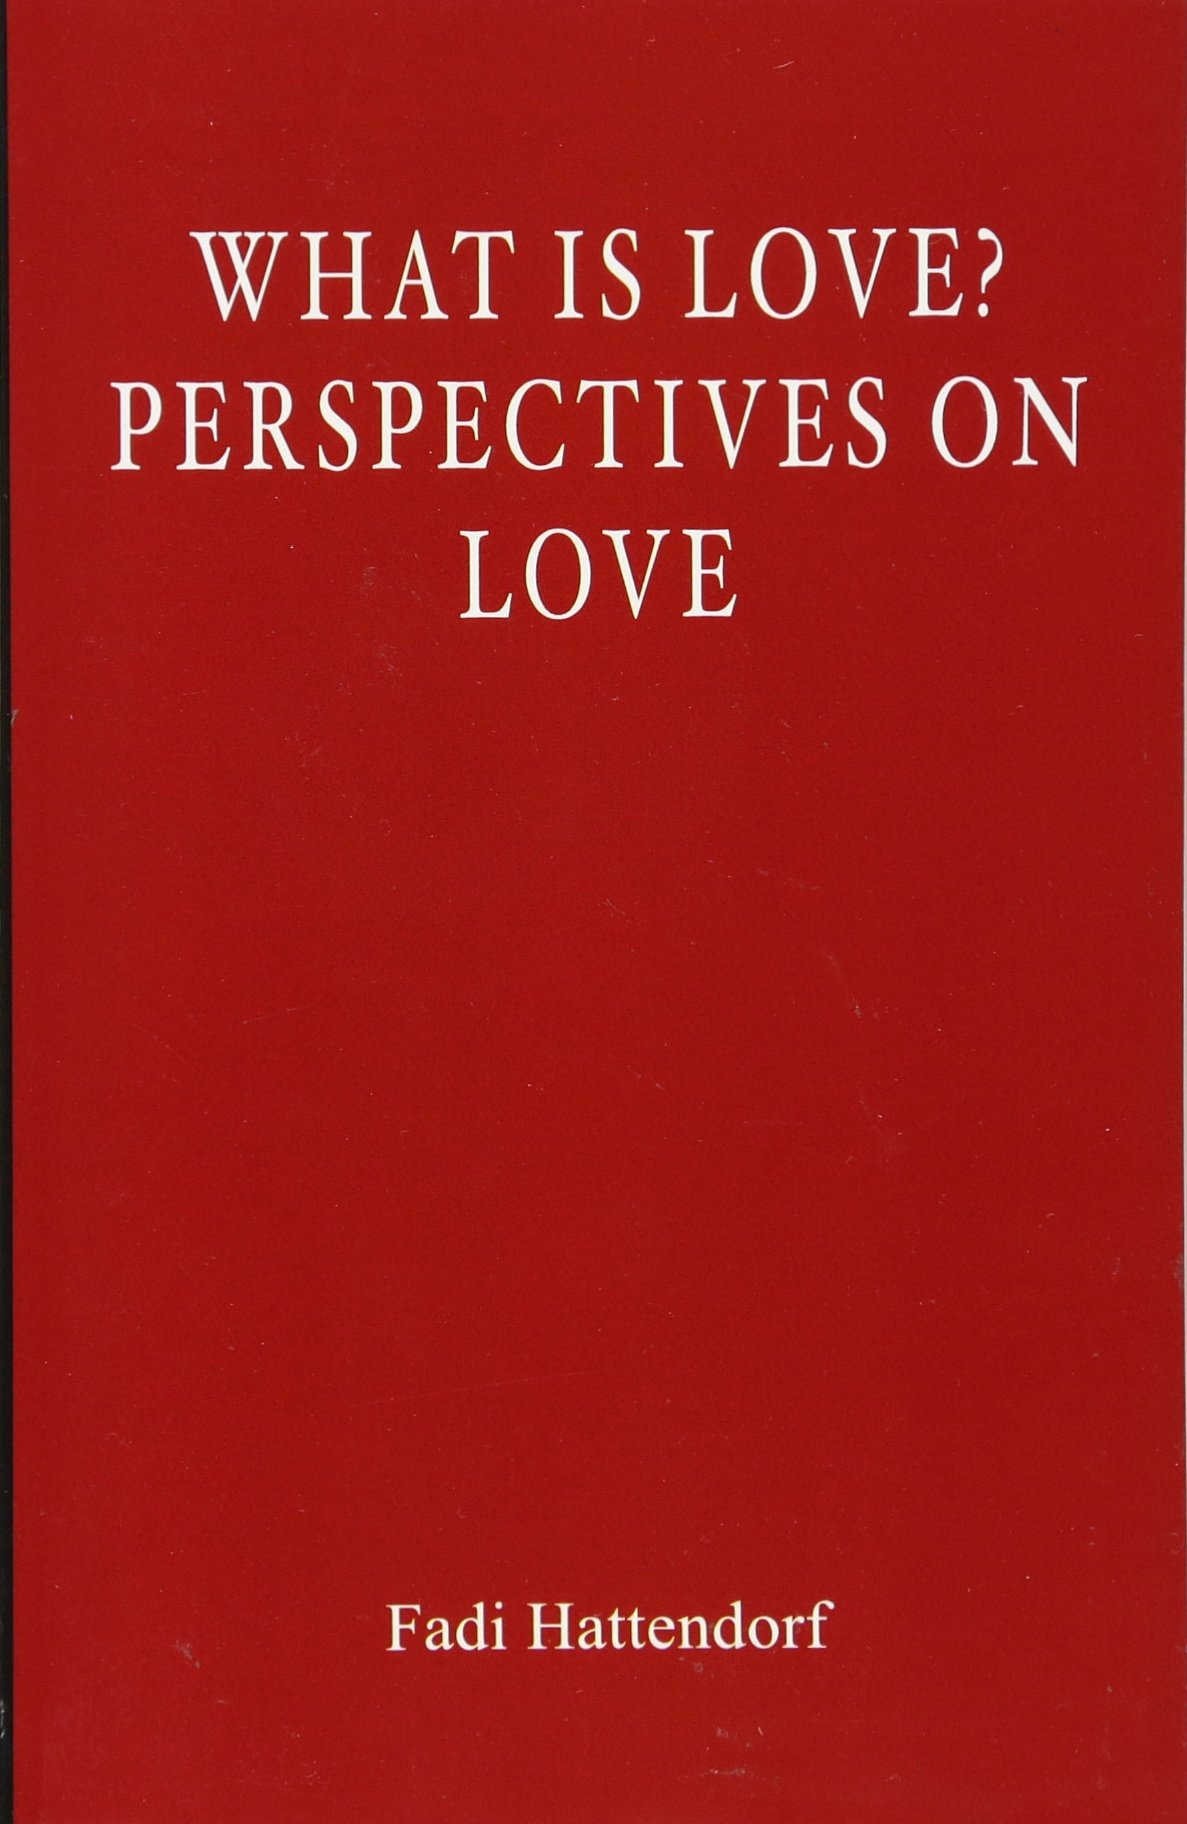 Download What Is Love? Perspectives On Love PDF